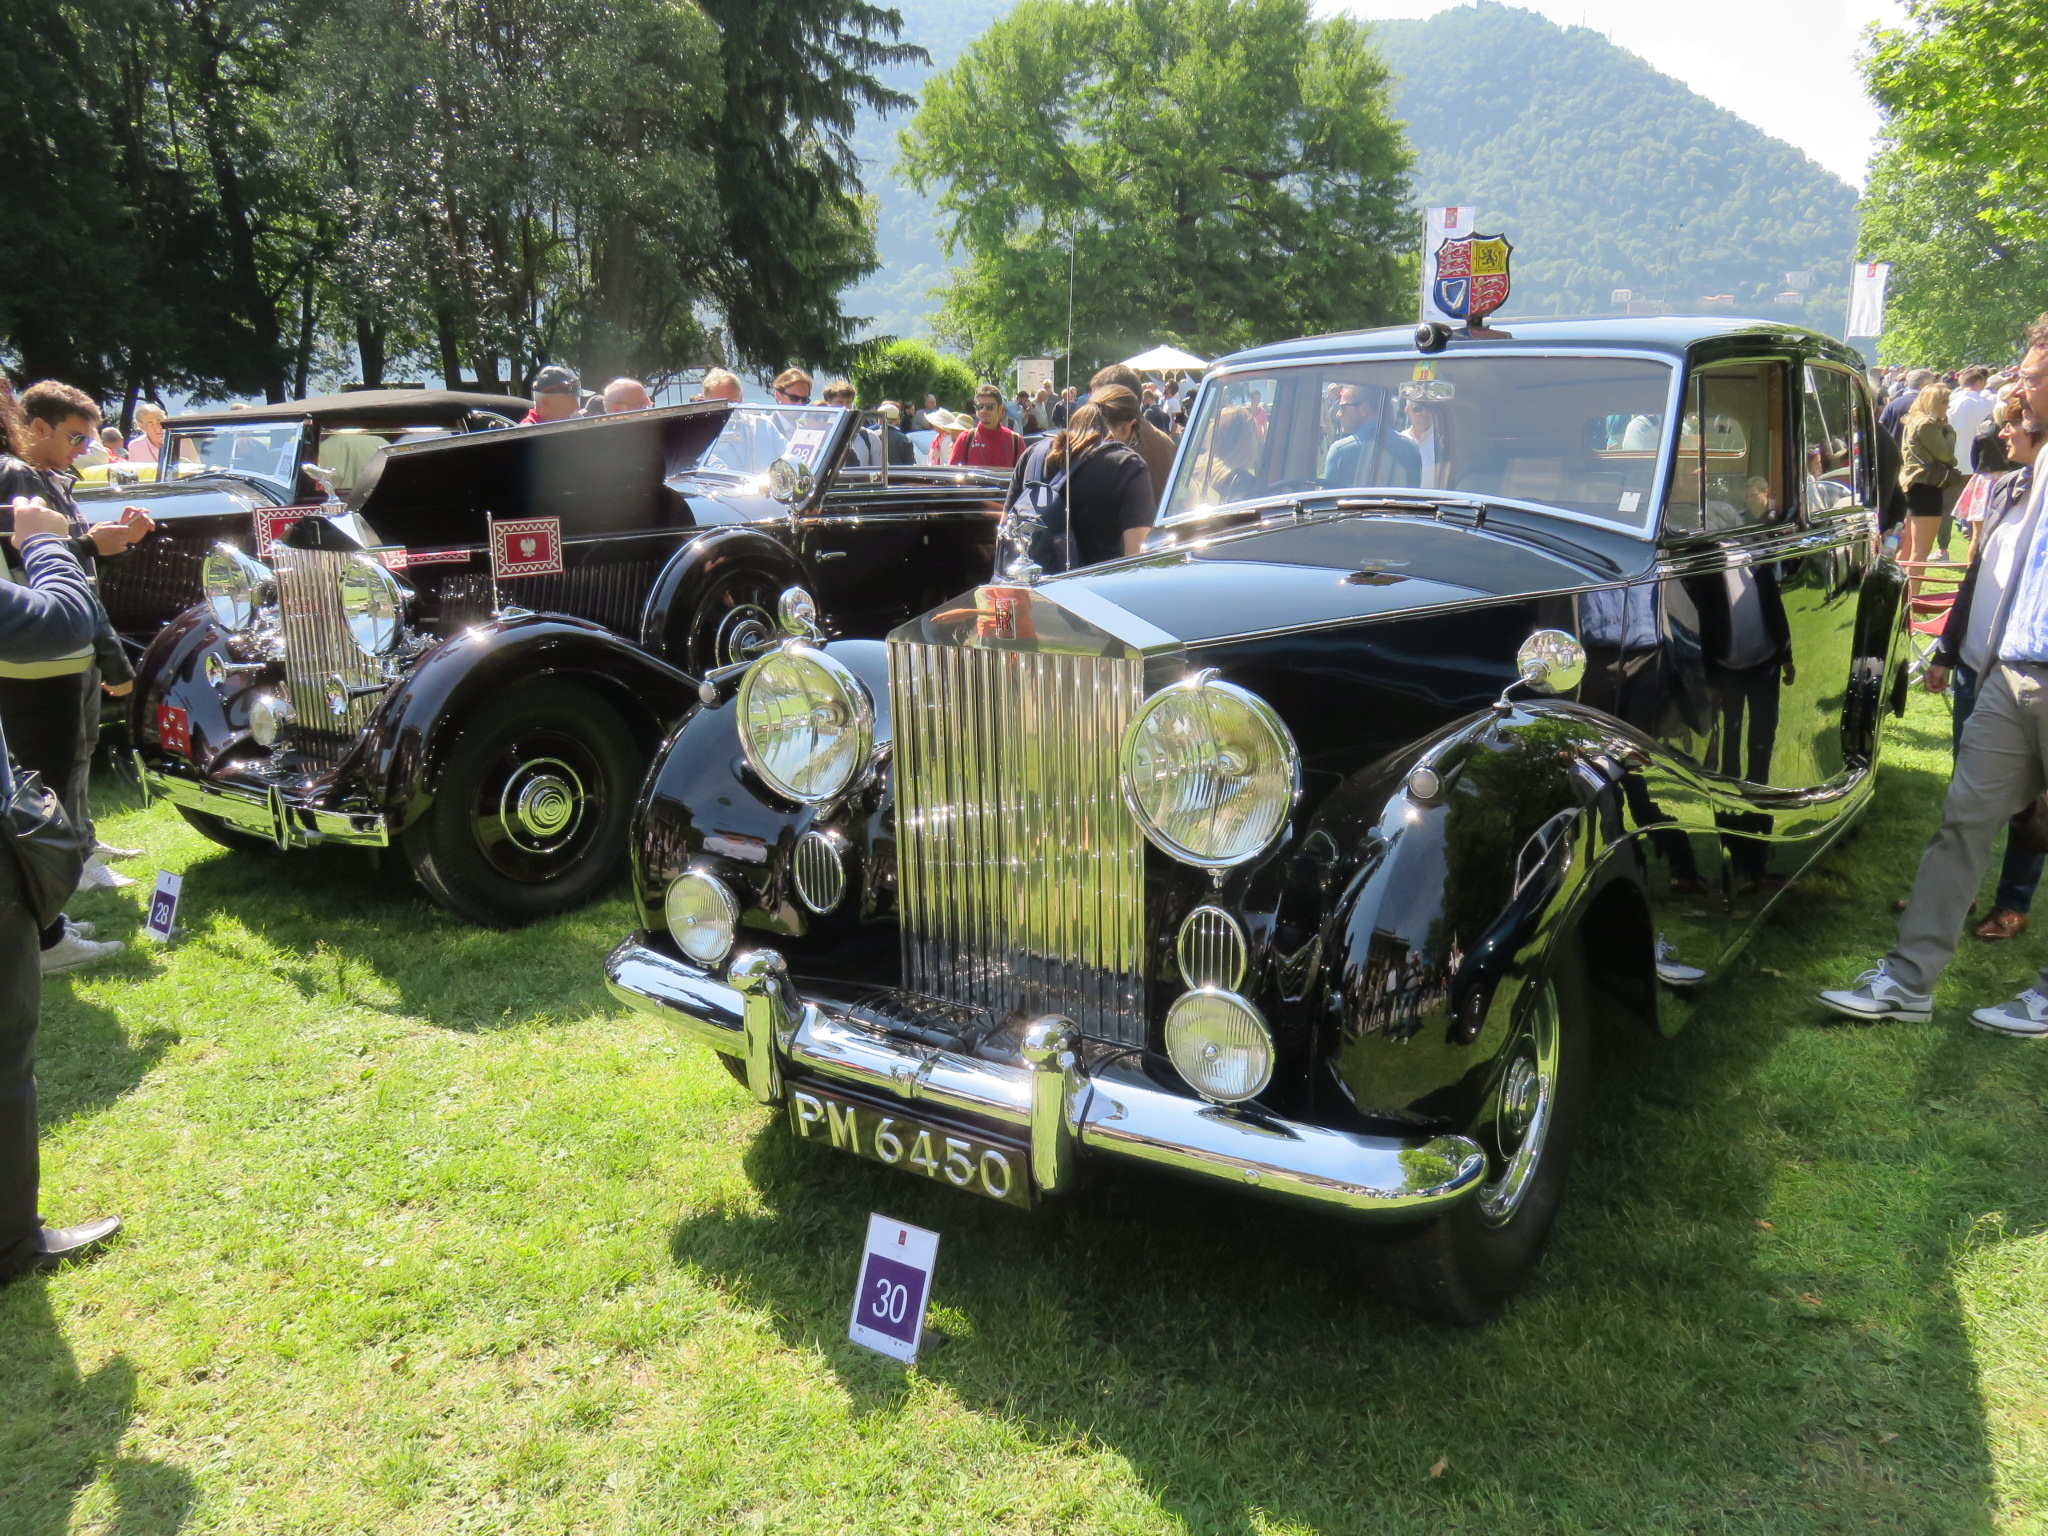 Concours D Elegance >> Concours D Elegance Wikipedia